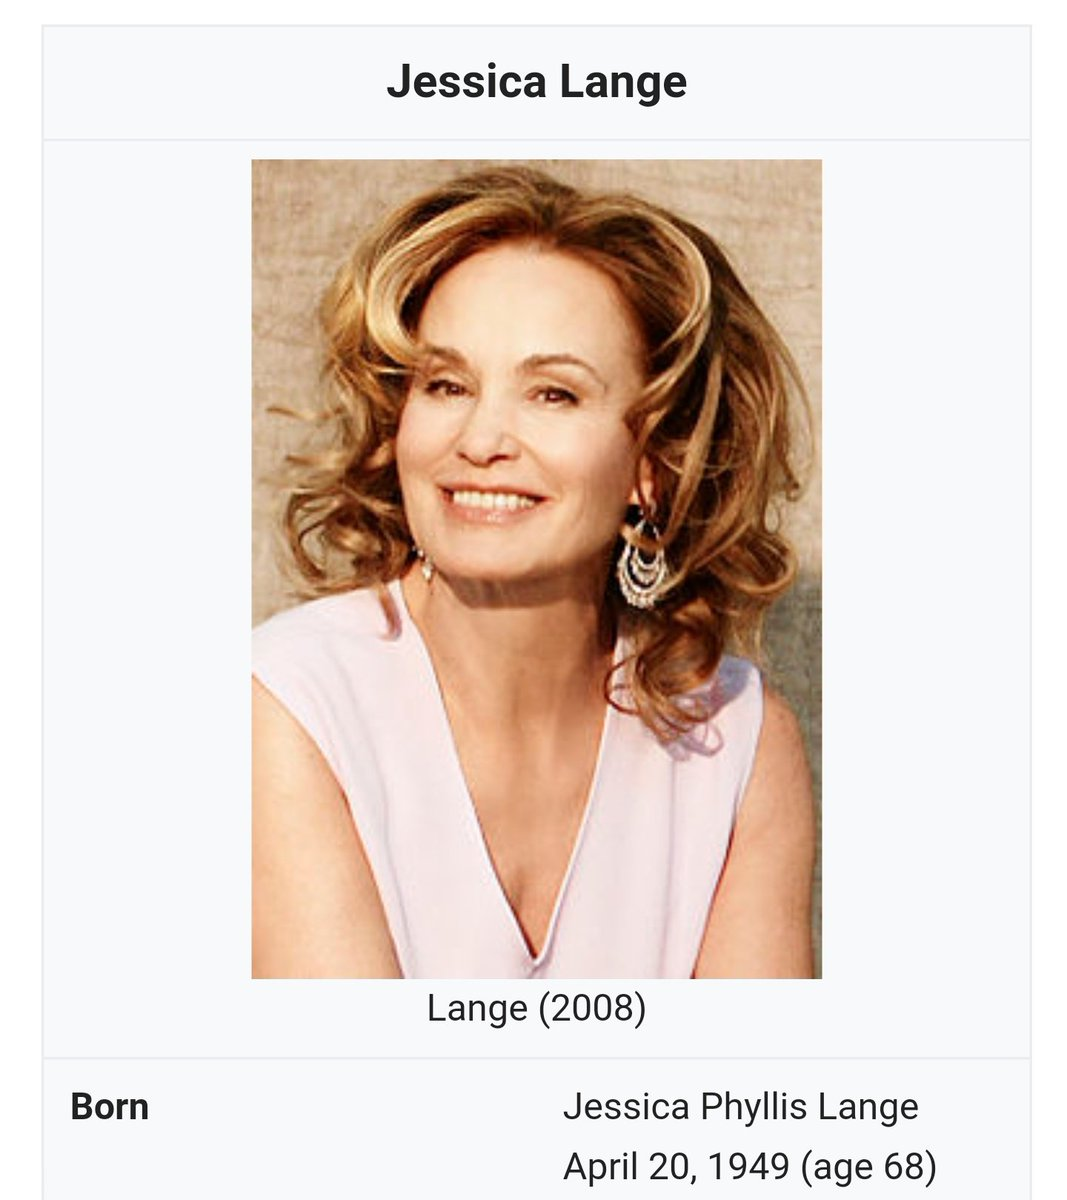 Happy birthday to actress Jessica Lange who is turning 69 today, 4/20.